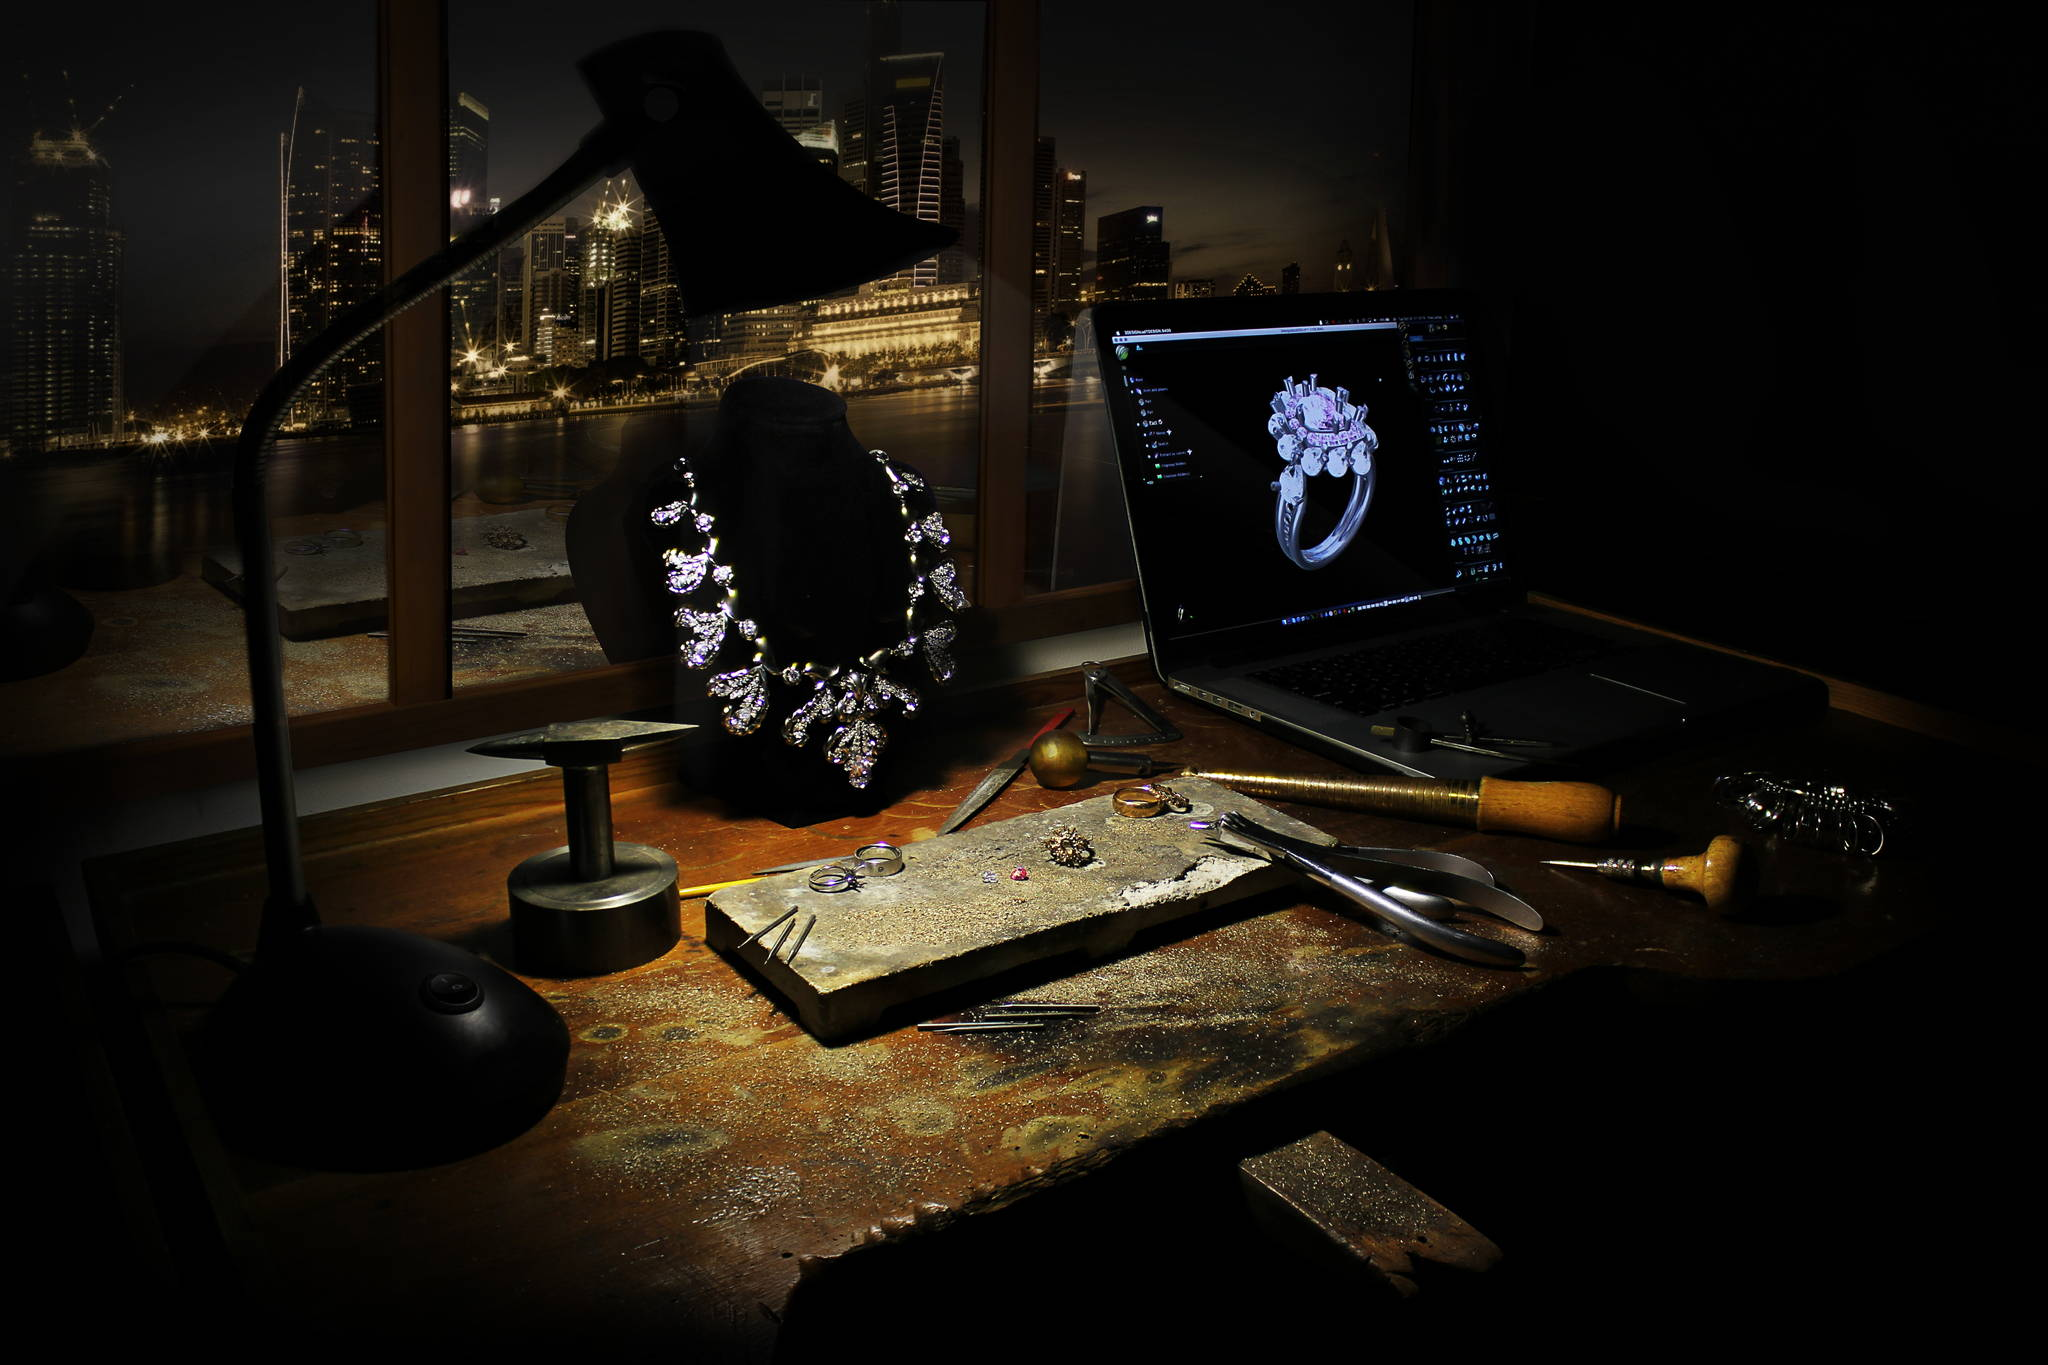 Jewelry master workplace with a computer